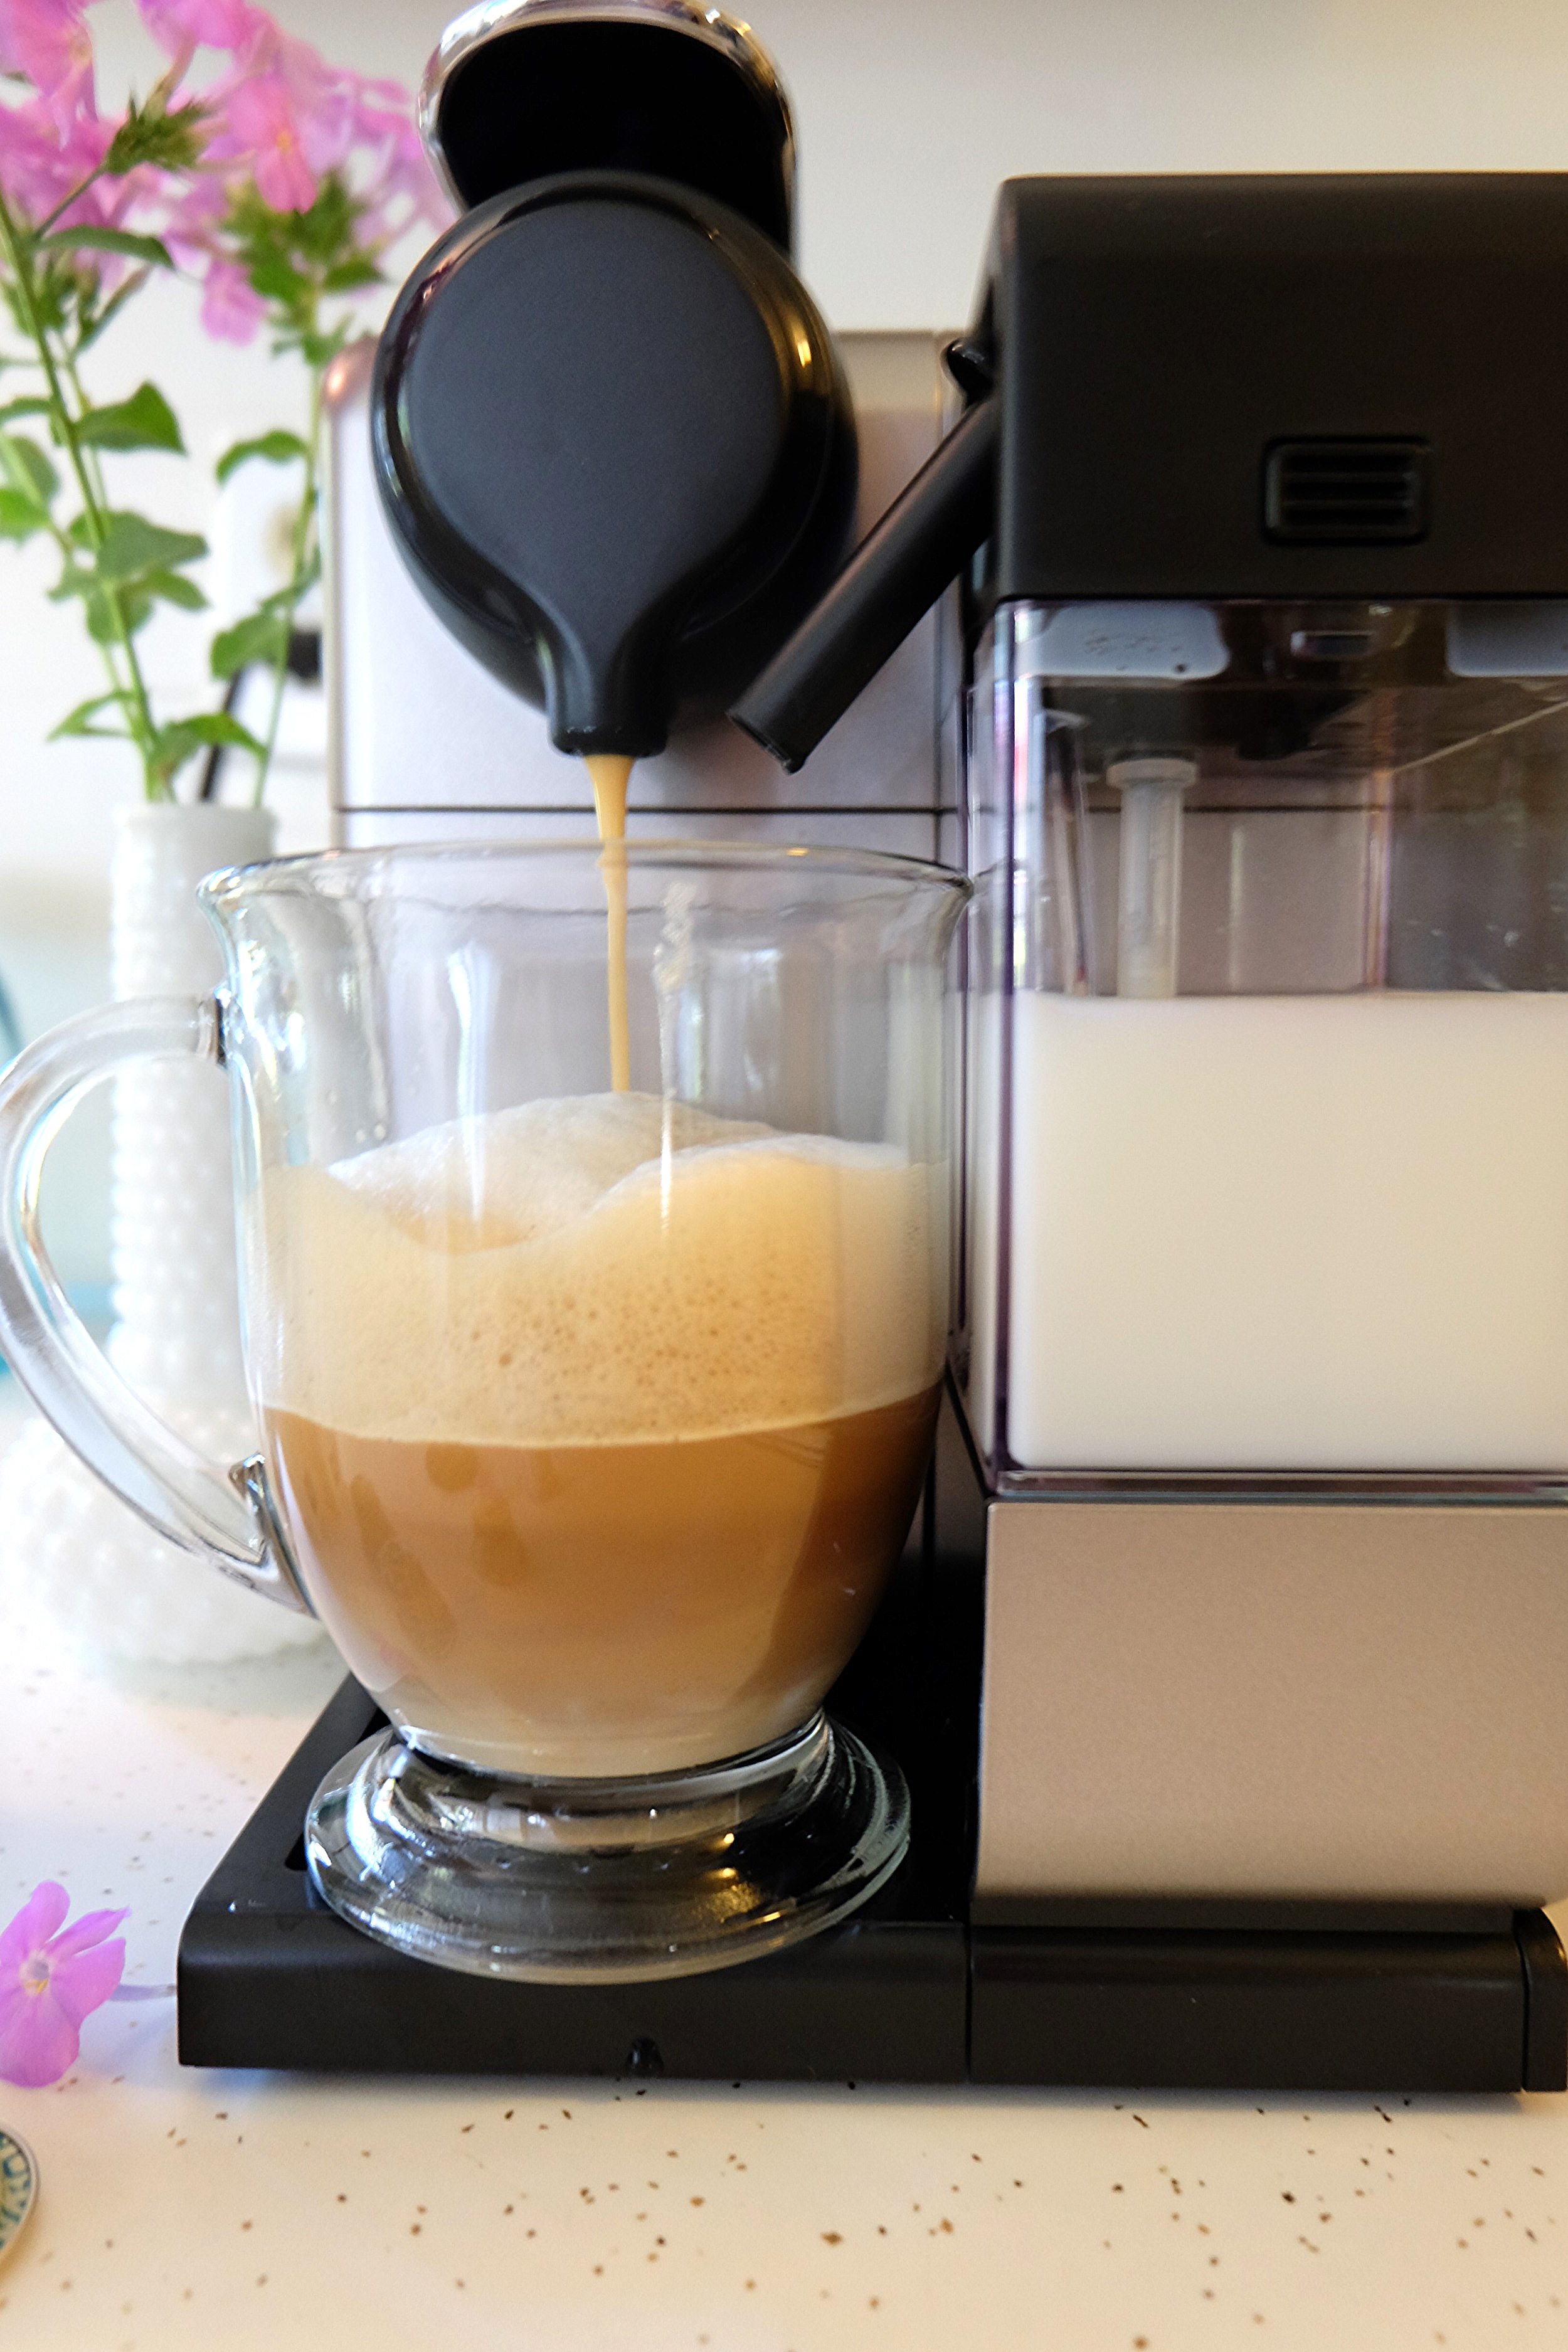 I made the Milano second with milk and it is A-MAZING! It's sweet cereal note and fruity aromas is just right! I love the froth on the machine because you can adjust it! The more the froth, the better!!